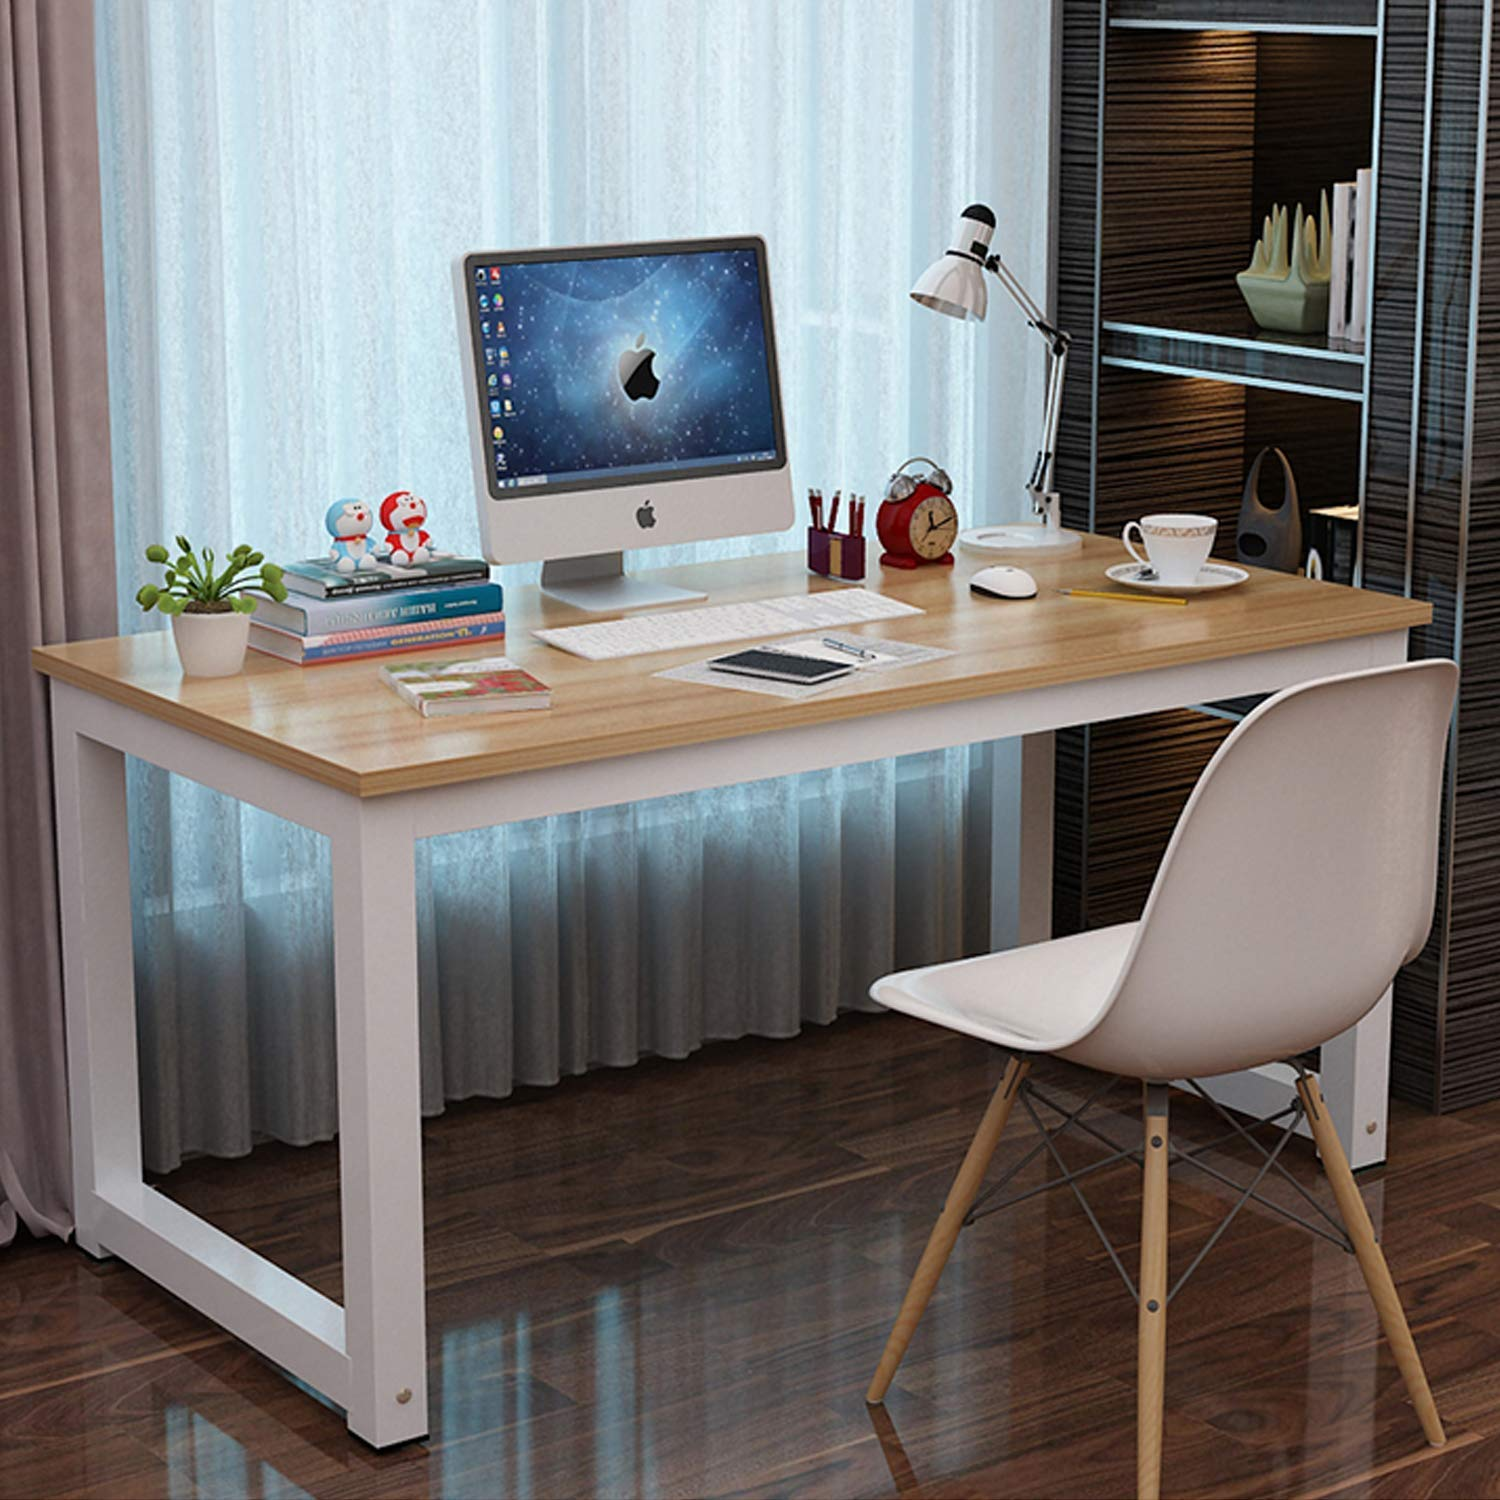 Cheap White Pc Desk Find White Pc Desk Deals On Line At Alibaba Com